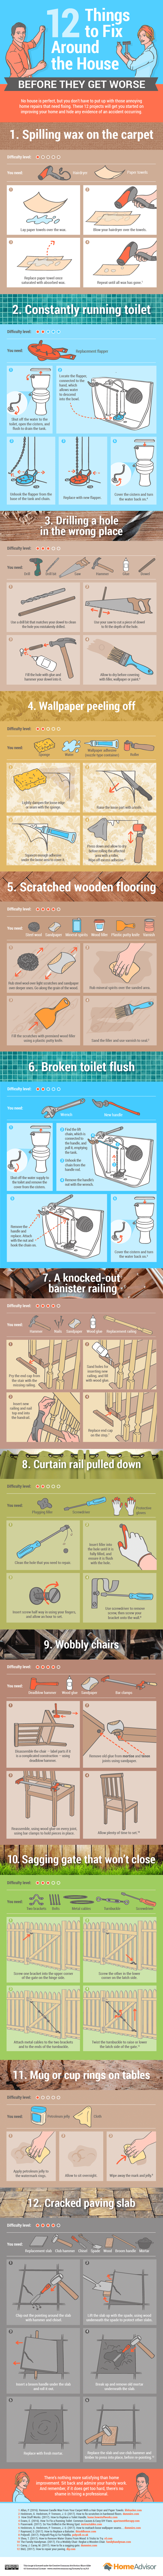 12 Things To Fix Around The House Before They Get Worse #Infographic